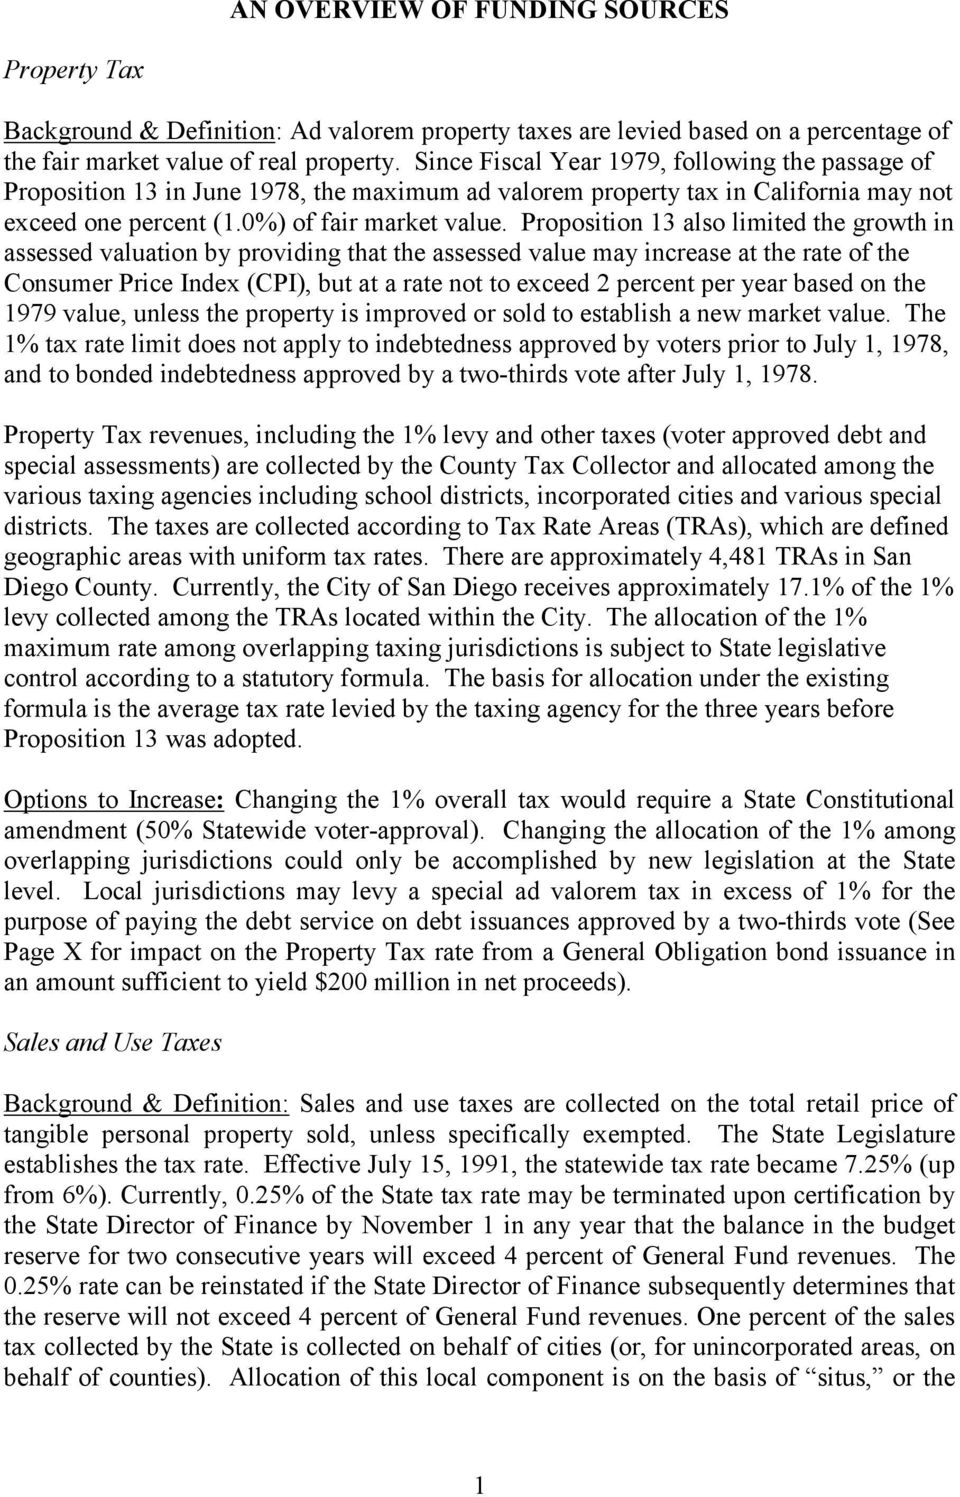 Proposition 13 also limited the growth in assessed valuation by providing that the assessed value may increase at the rate of the Consumer Price Index (CPI), but at a rate not to exceed 2 percent per